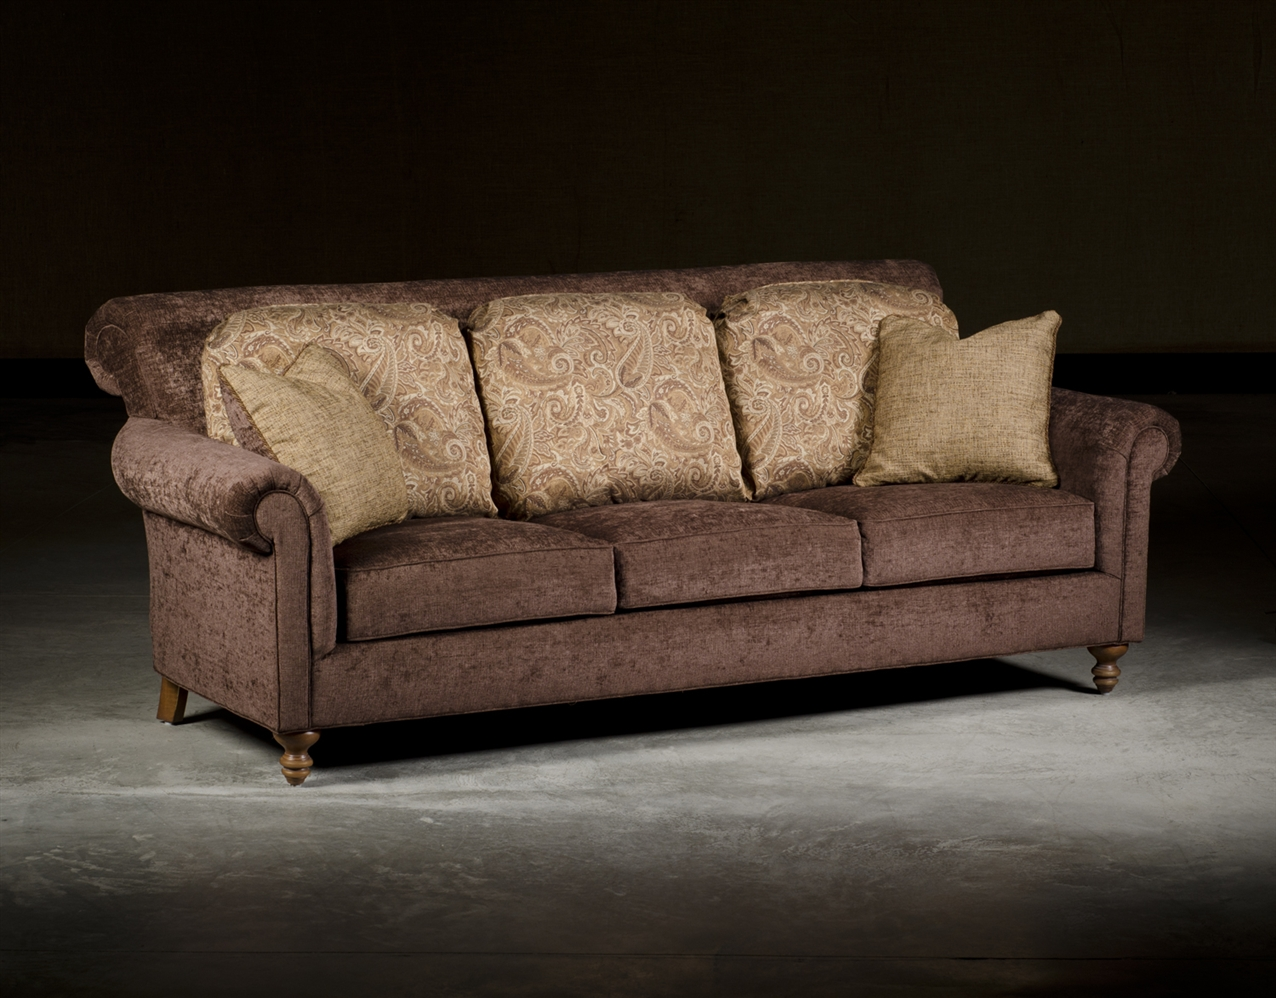 Best buy couch high quality furniture for Best quality furniture